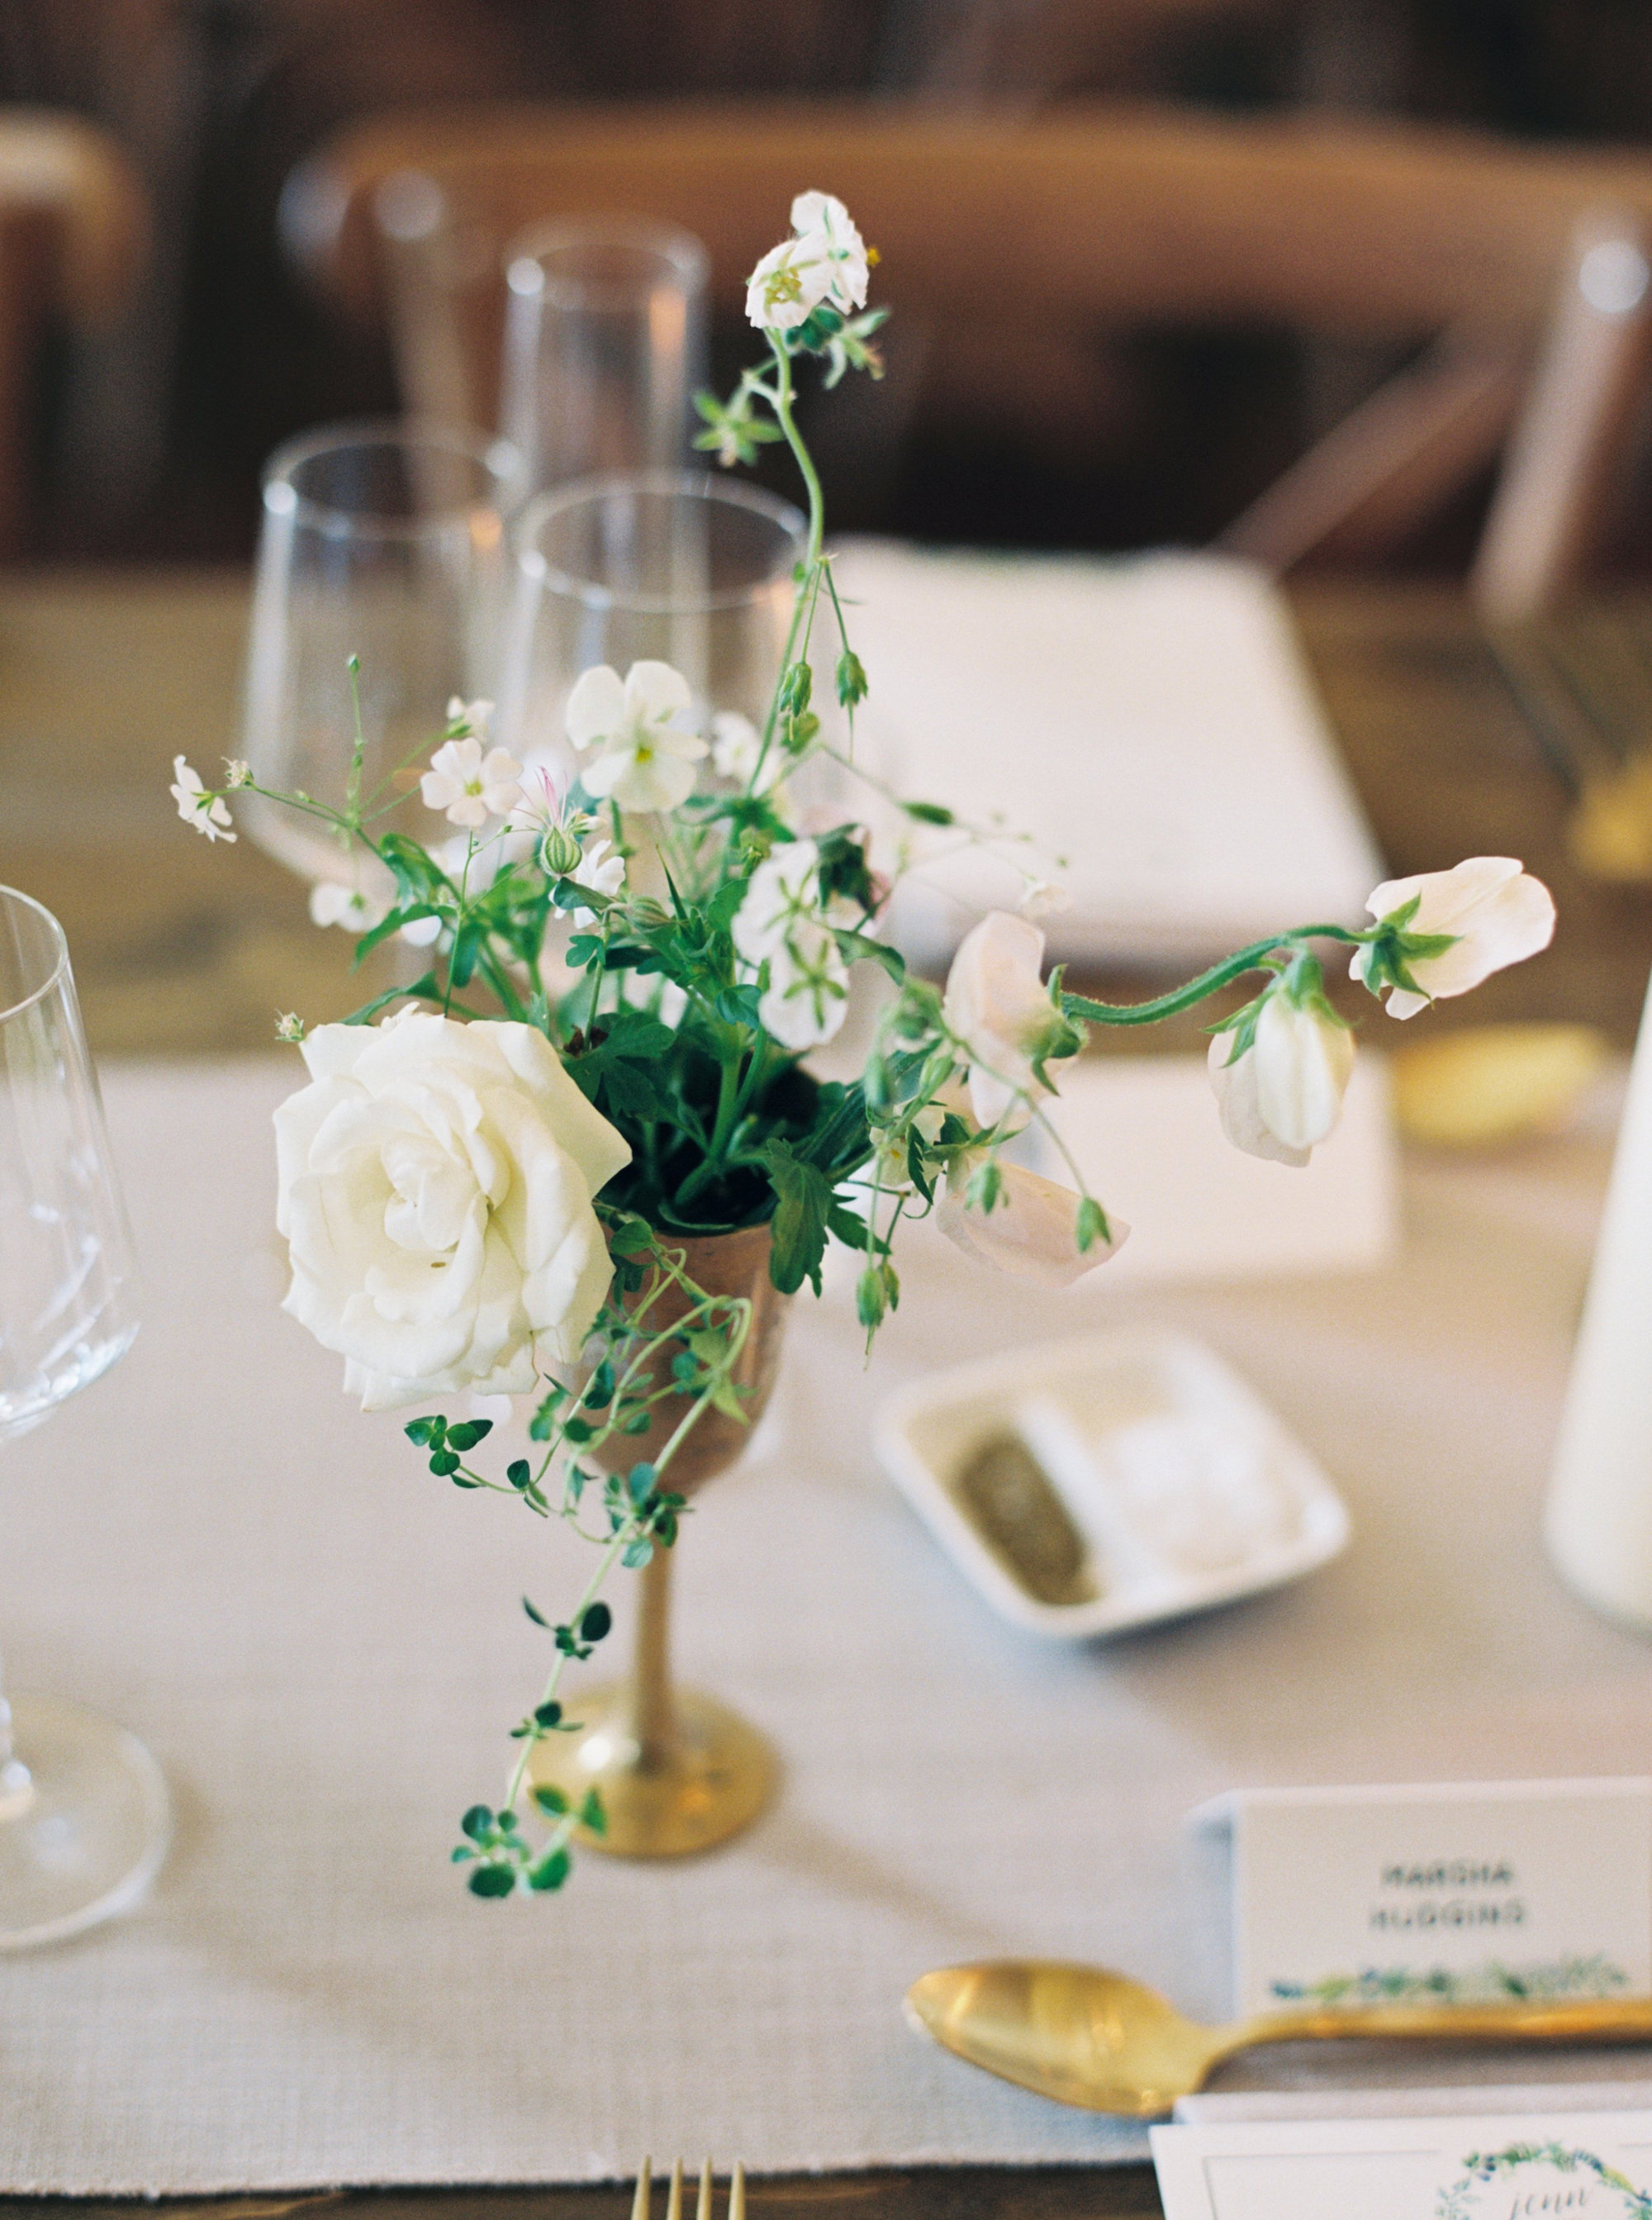 Luxury Wedding Planner UK | Jennifer & Timothy's English Country Manor Wedding | Soft Pink Pale Blue White and Silver Toned Green Neutral Tones American Bride North Cadbury Court | Nicole Colwell Photography 1195.jpg